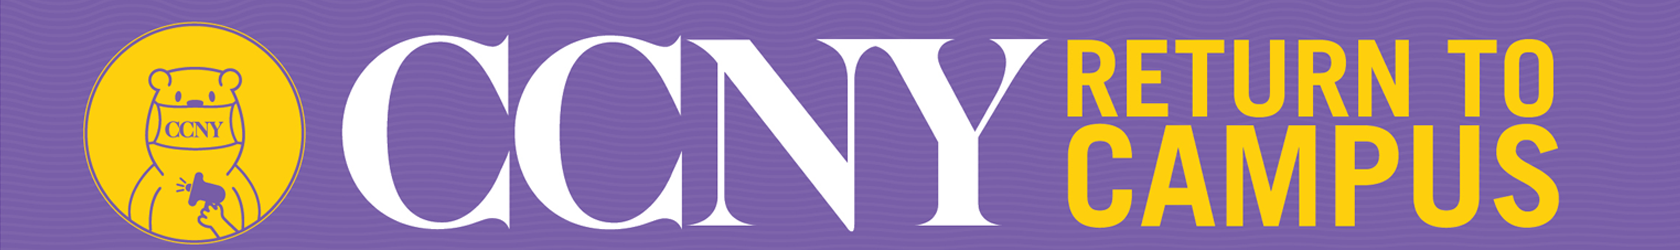 CCNY Return to Campus